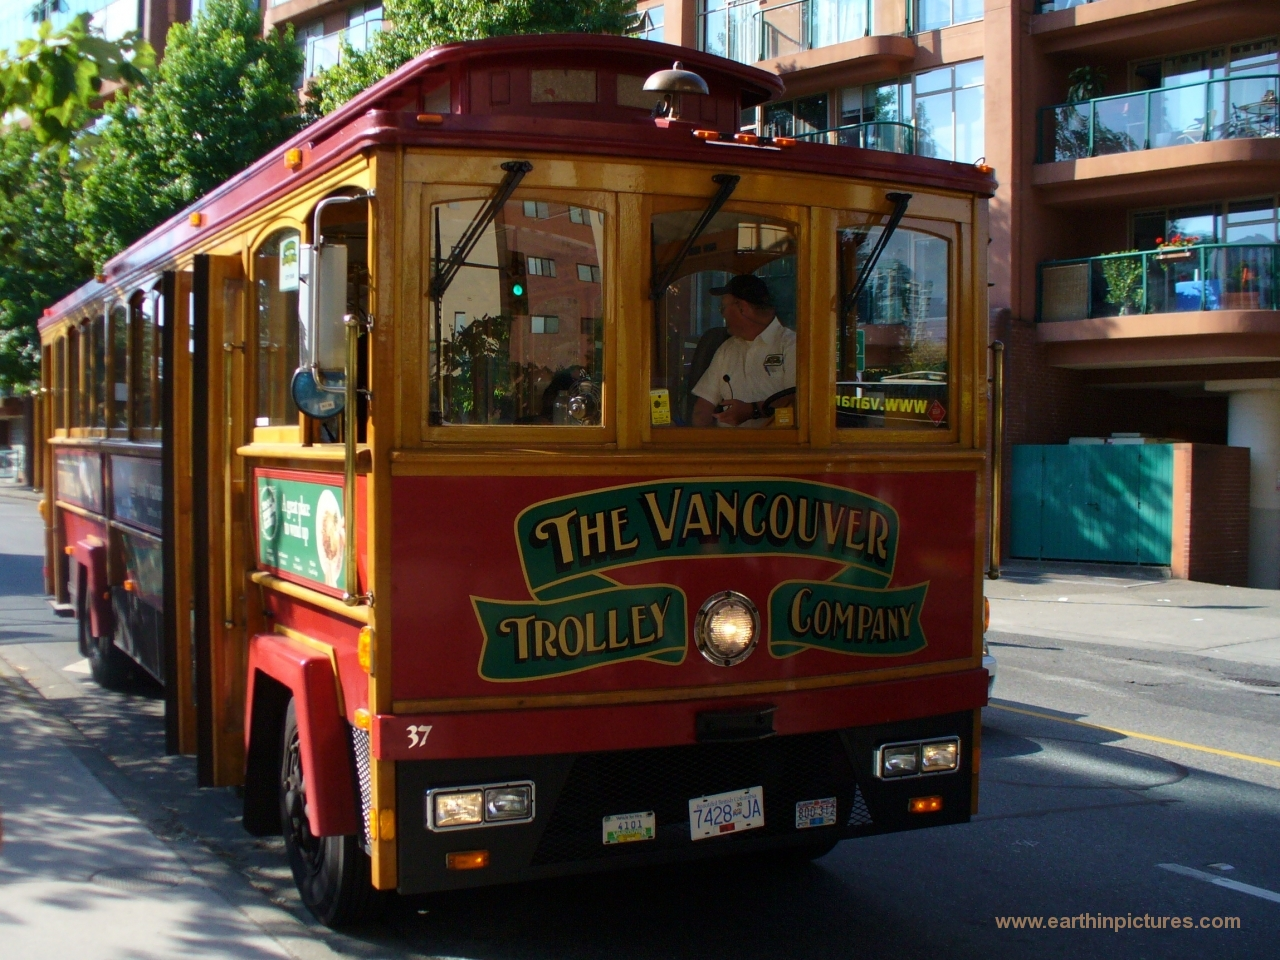 Vancouver Trolley Company Bus without trolley poles ( 1280x960 )